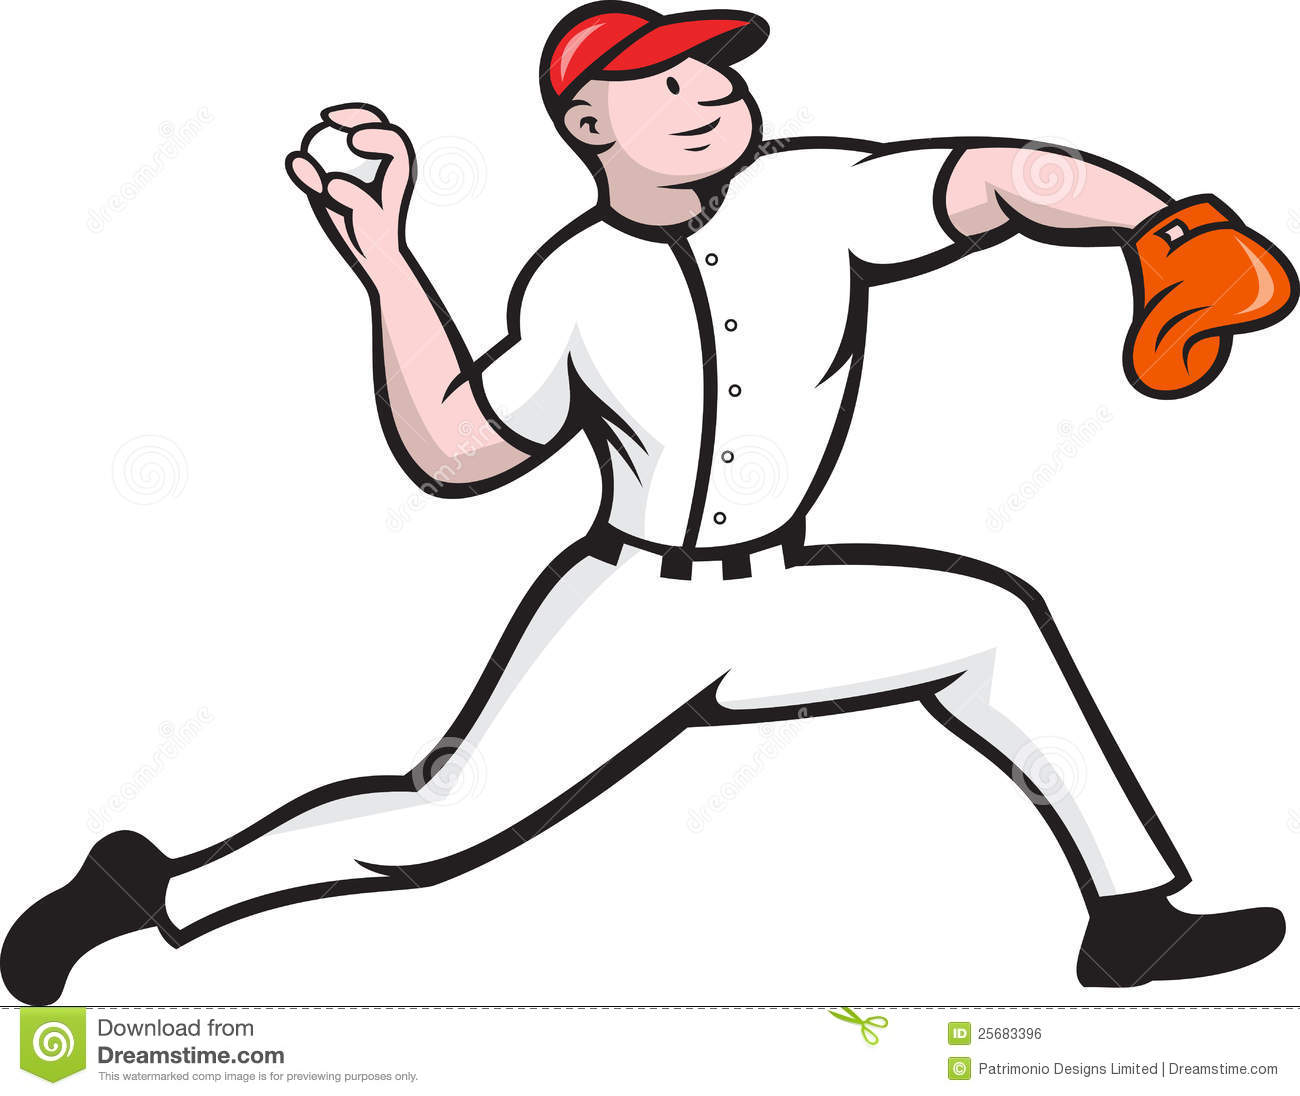 Cartoon illustration of a baseball player pitcher pitching ball facing ...